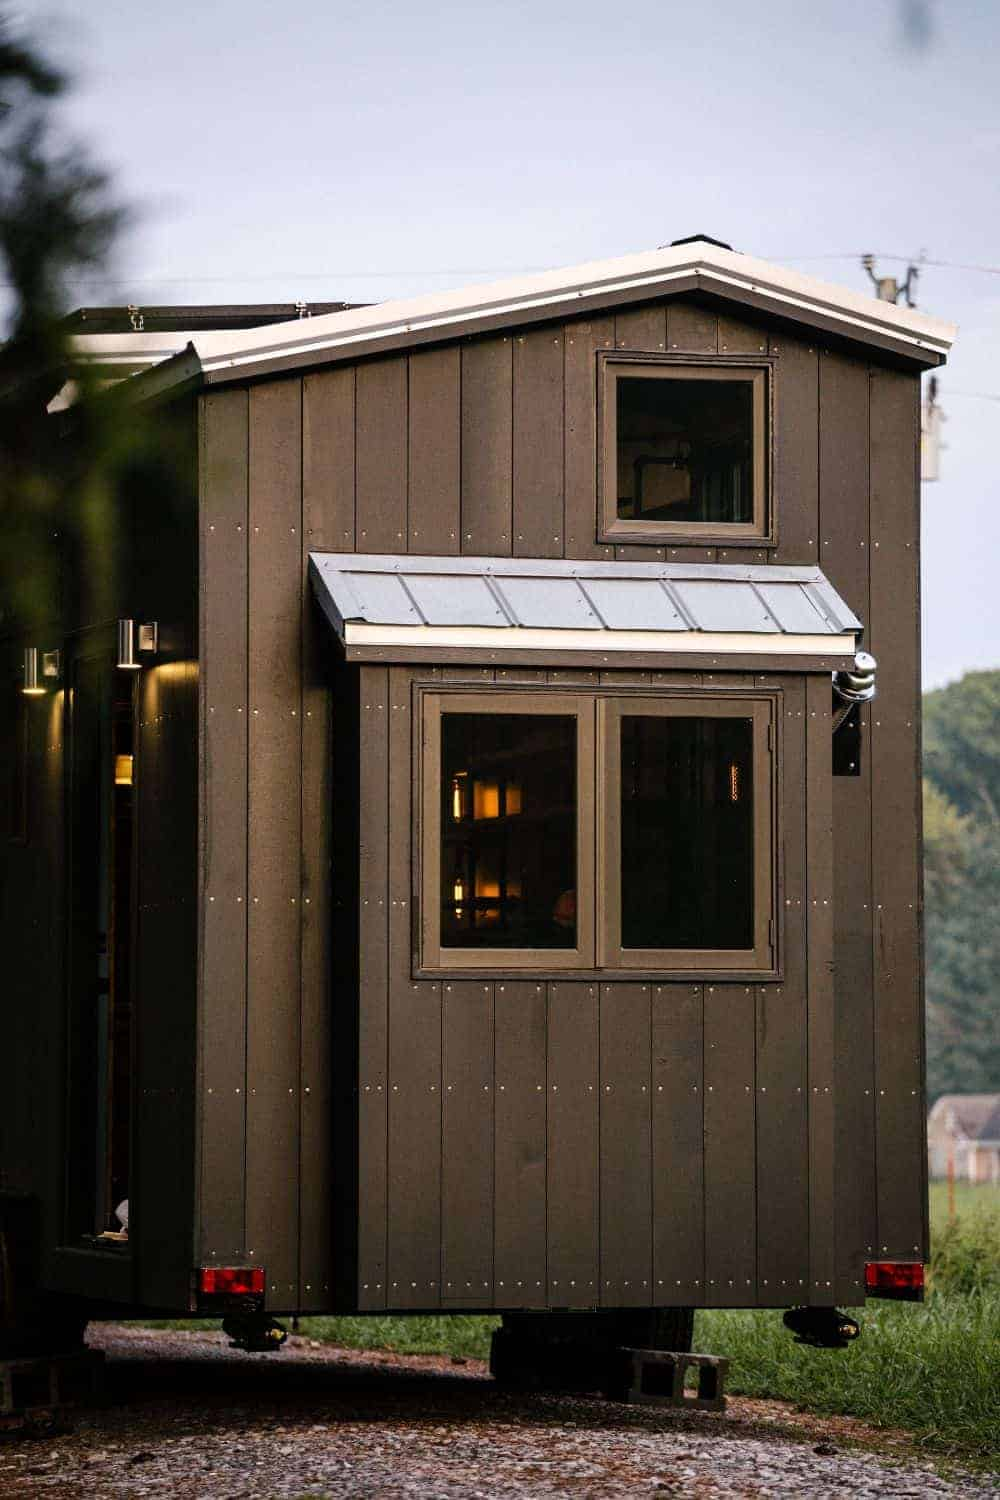 An industrial tiny wooden house with glass windows and wall lights.